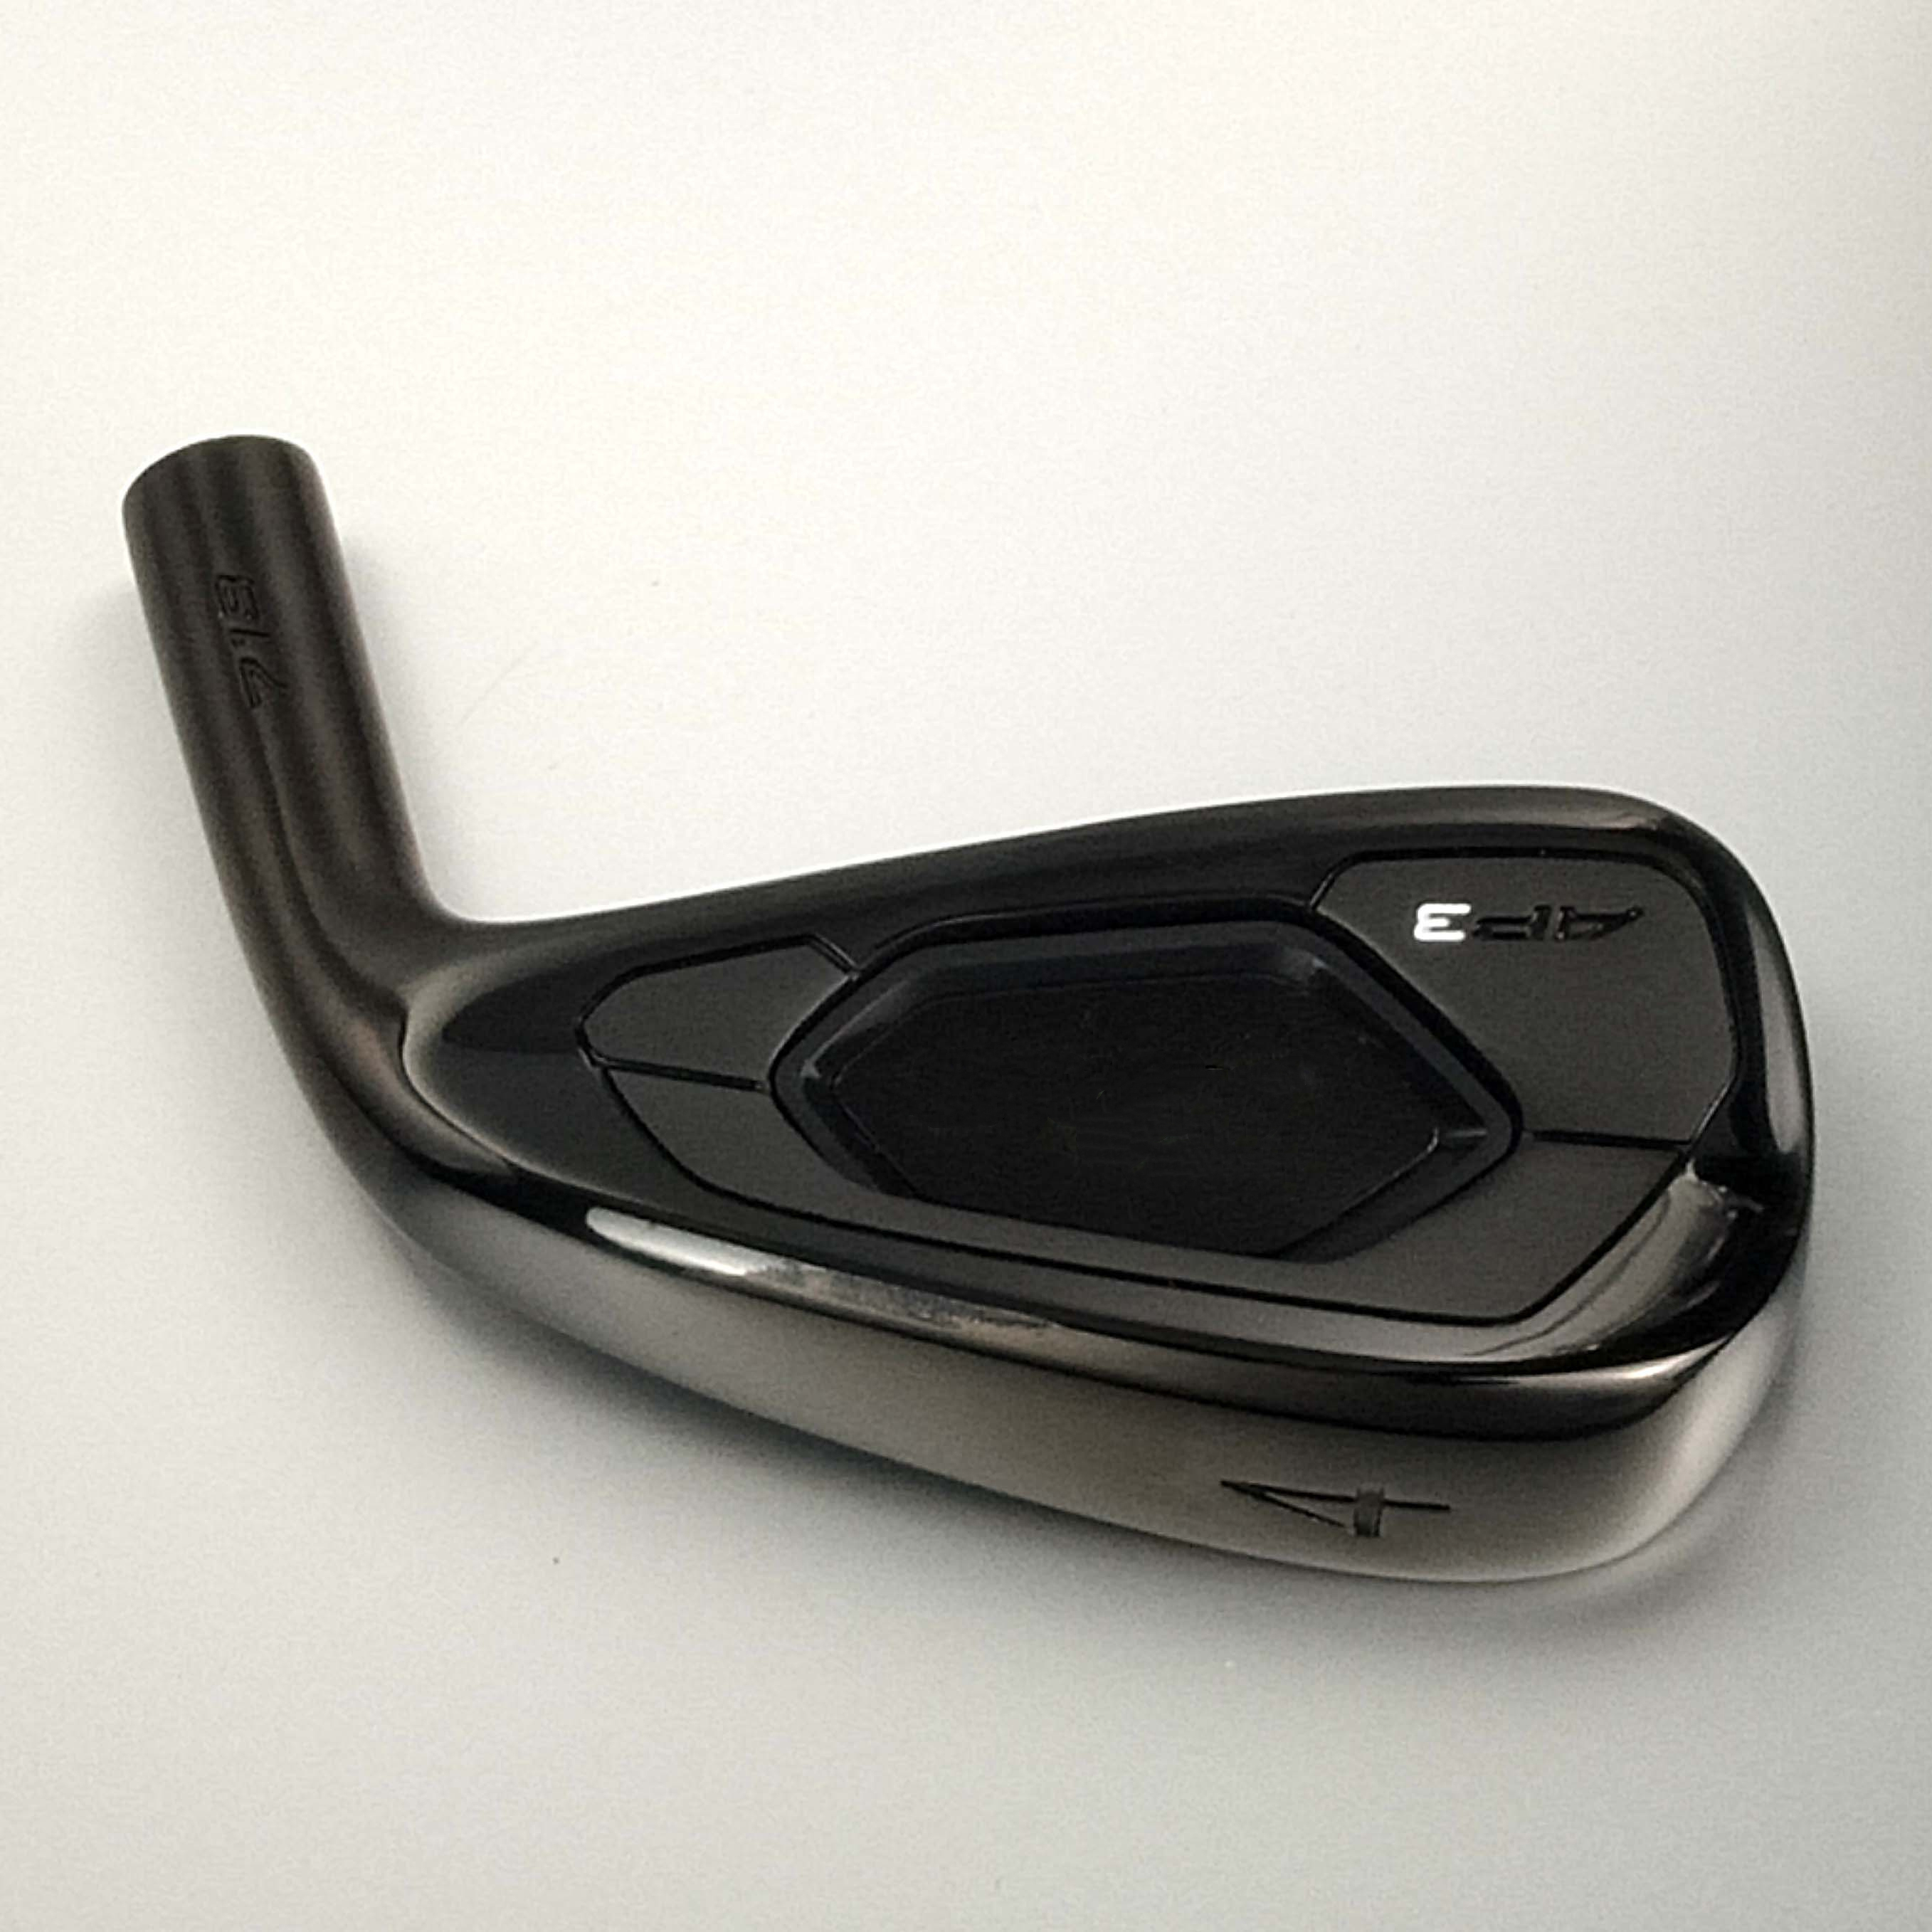 Golf Clubs Irons A3-718 Black Golf Forged Iron 3-9W R/S Steel Shaft With Head Cover Free Shipping